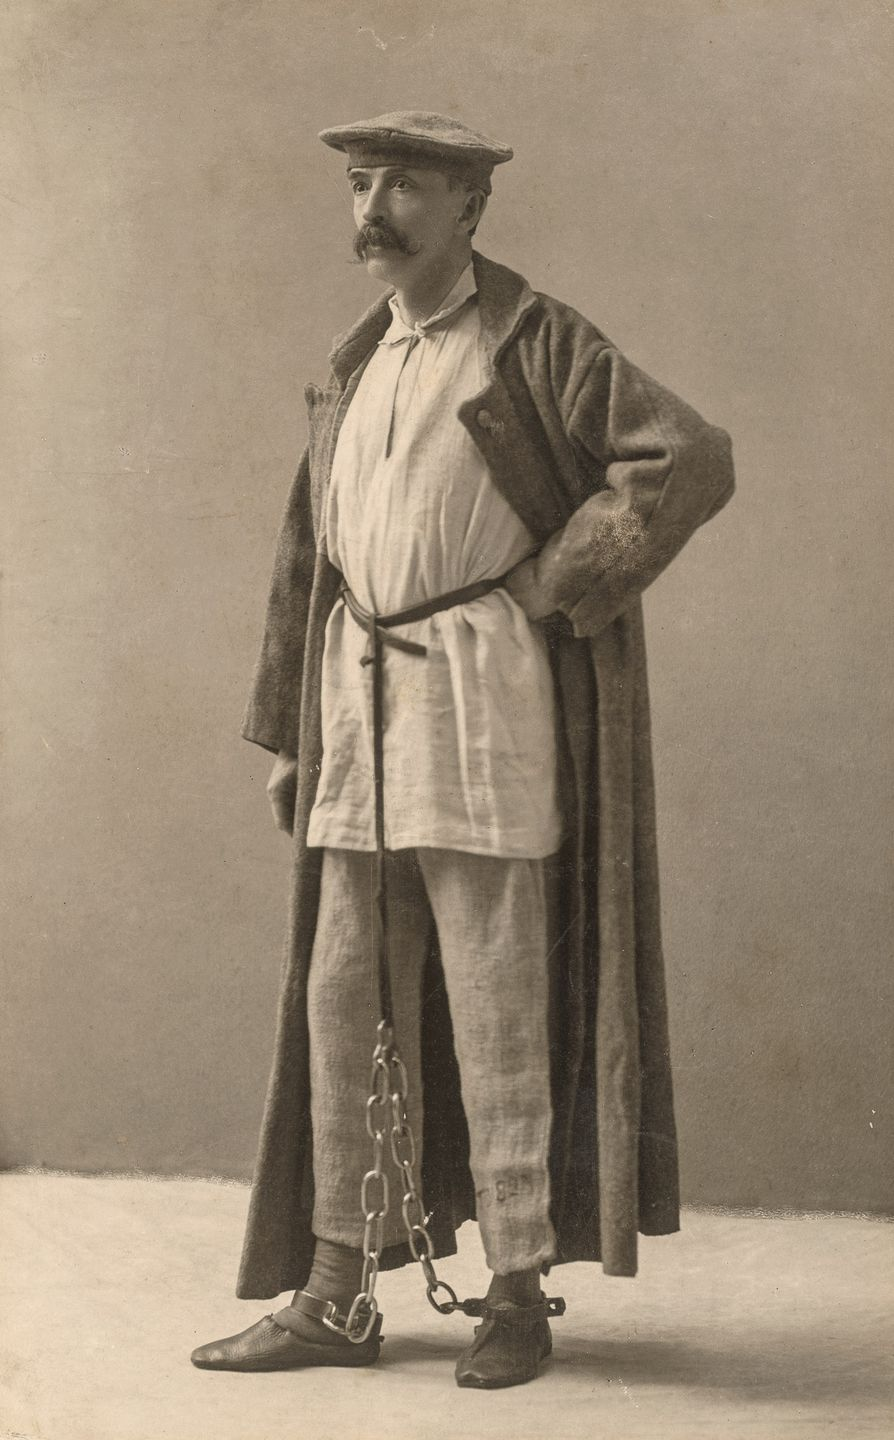 George Kennan poses in Siberian exile dress, each piece given to him by an exile from the dress he had worn